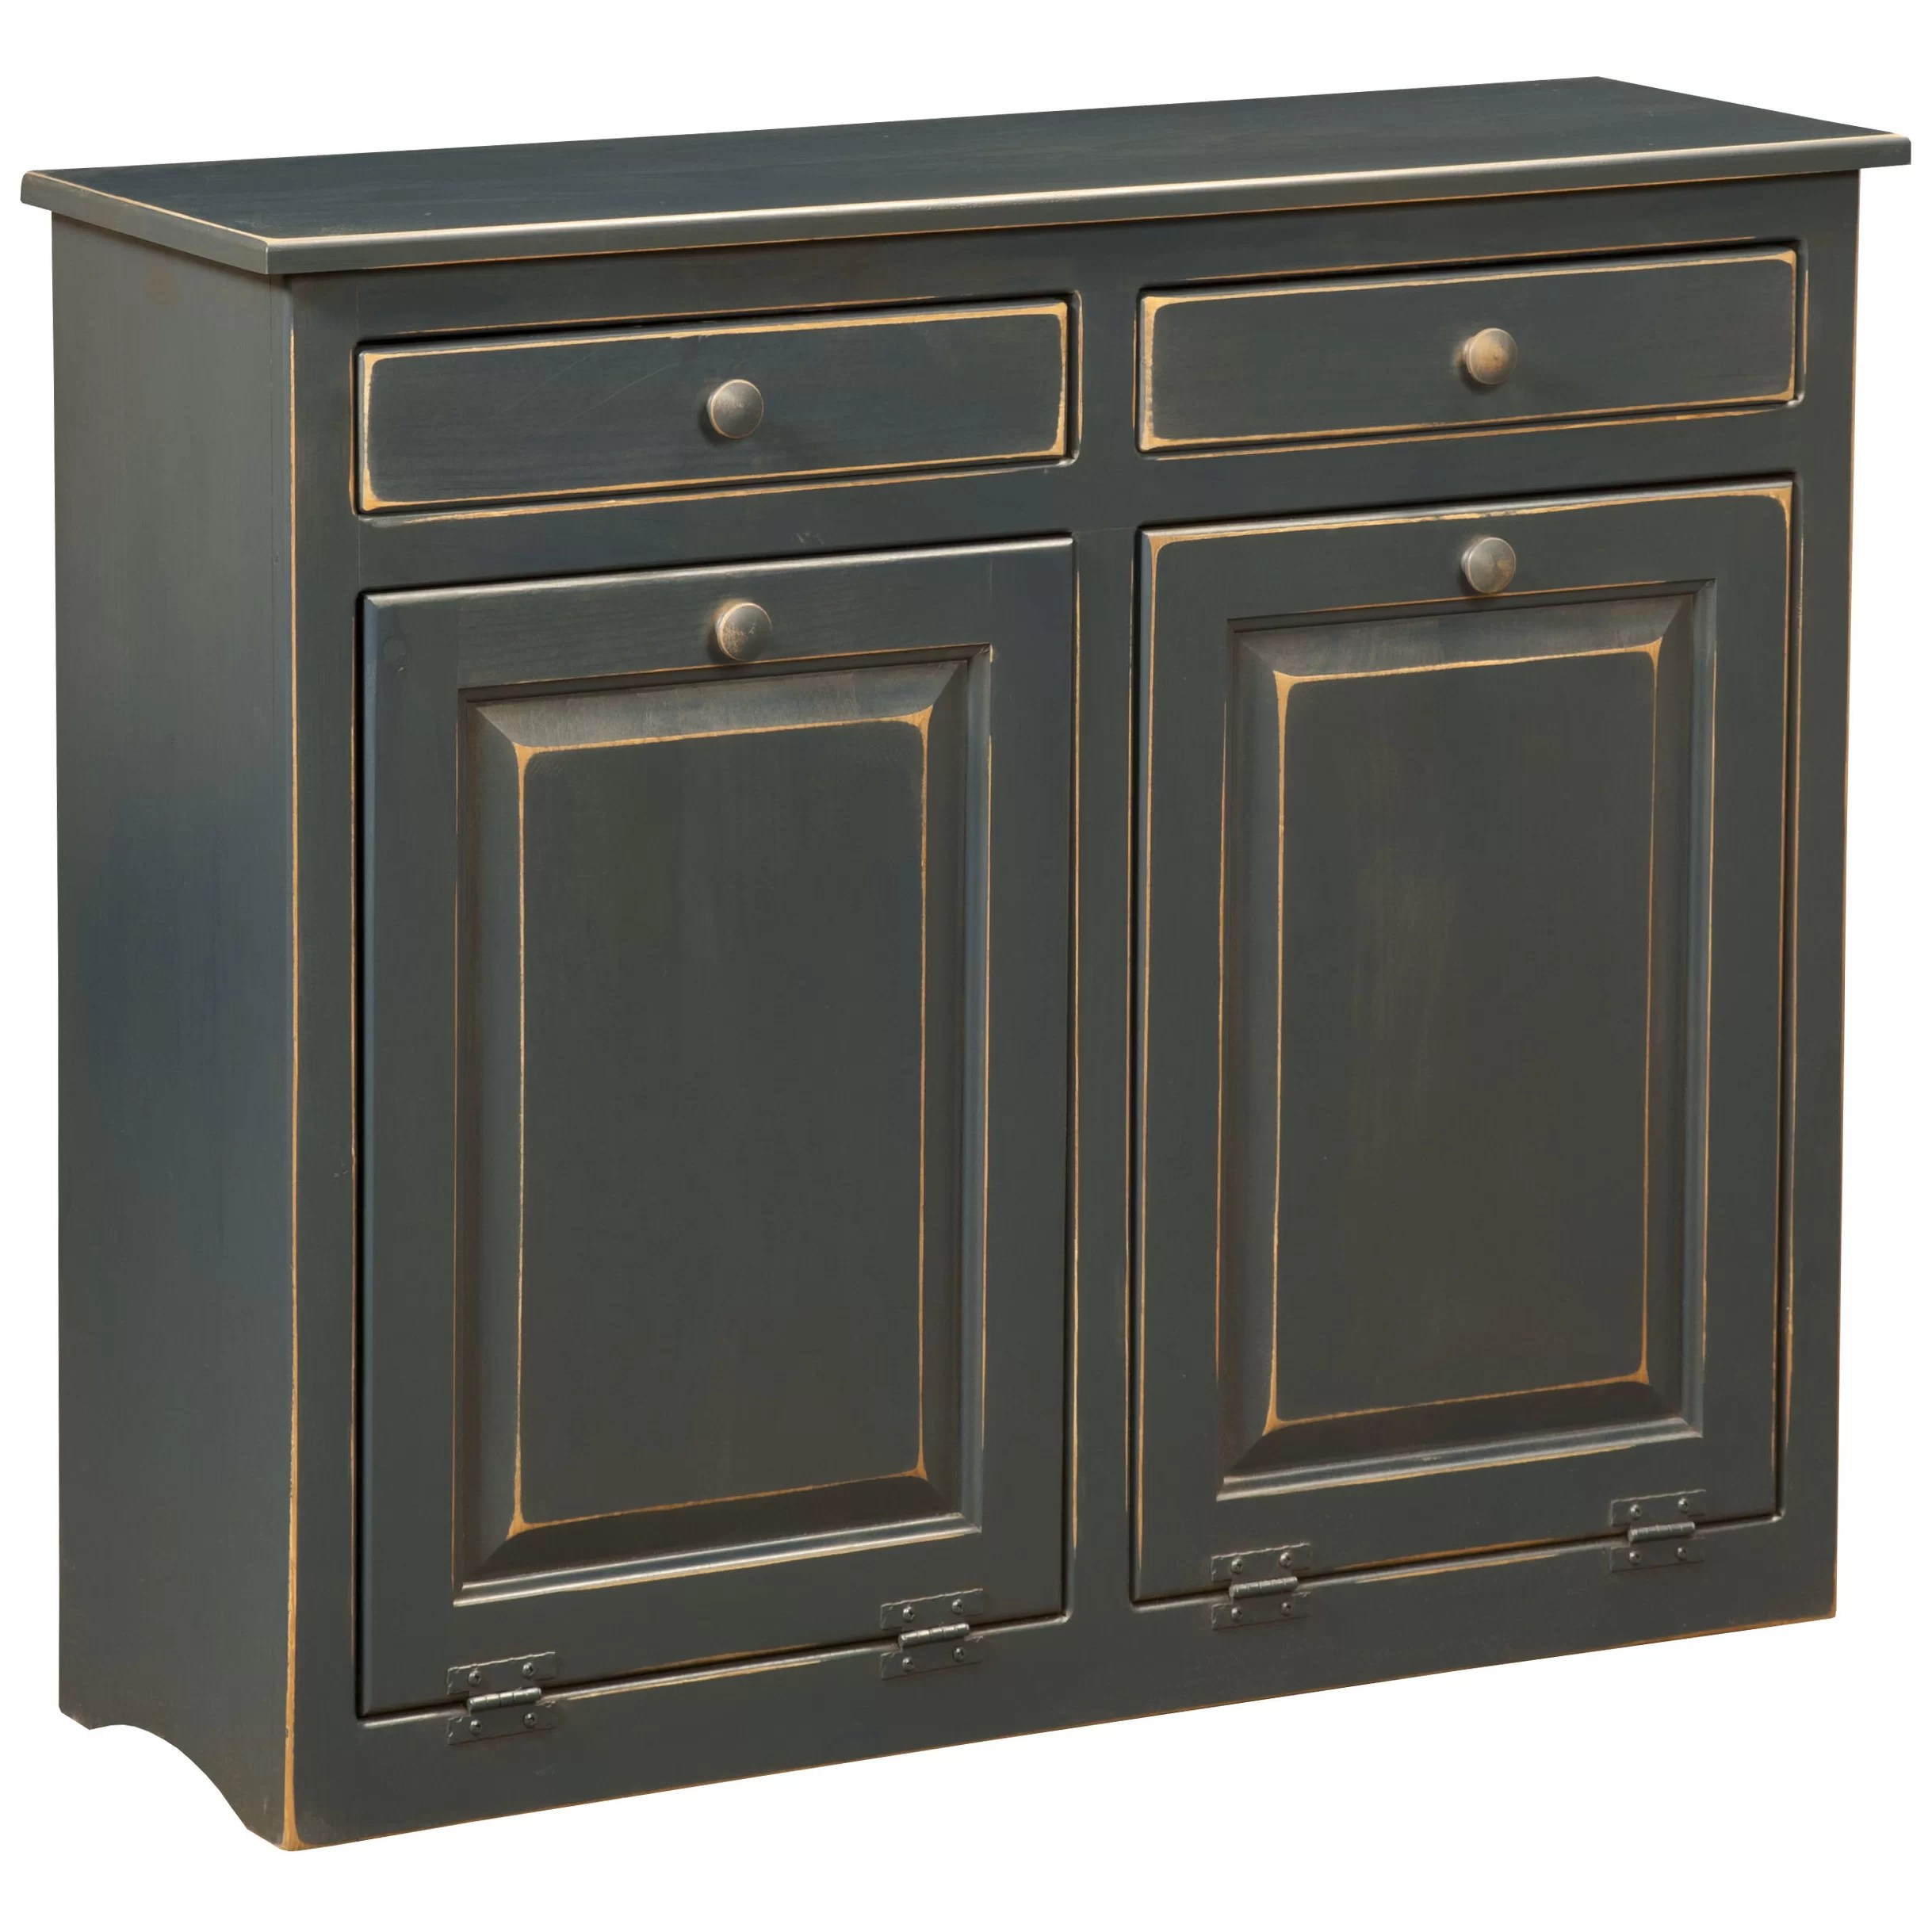 dCOR design Double Cabinet With Trash Bin  Wayfair